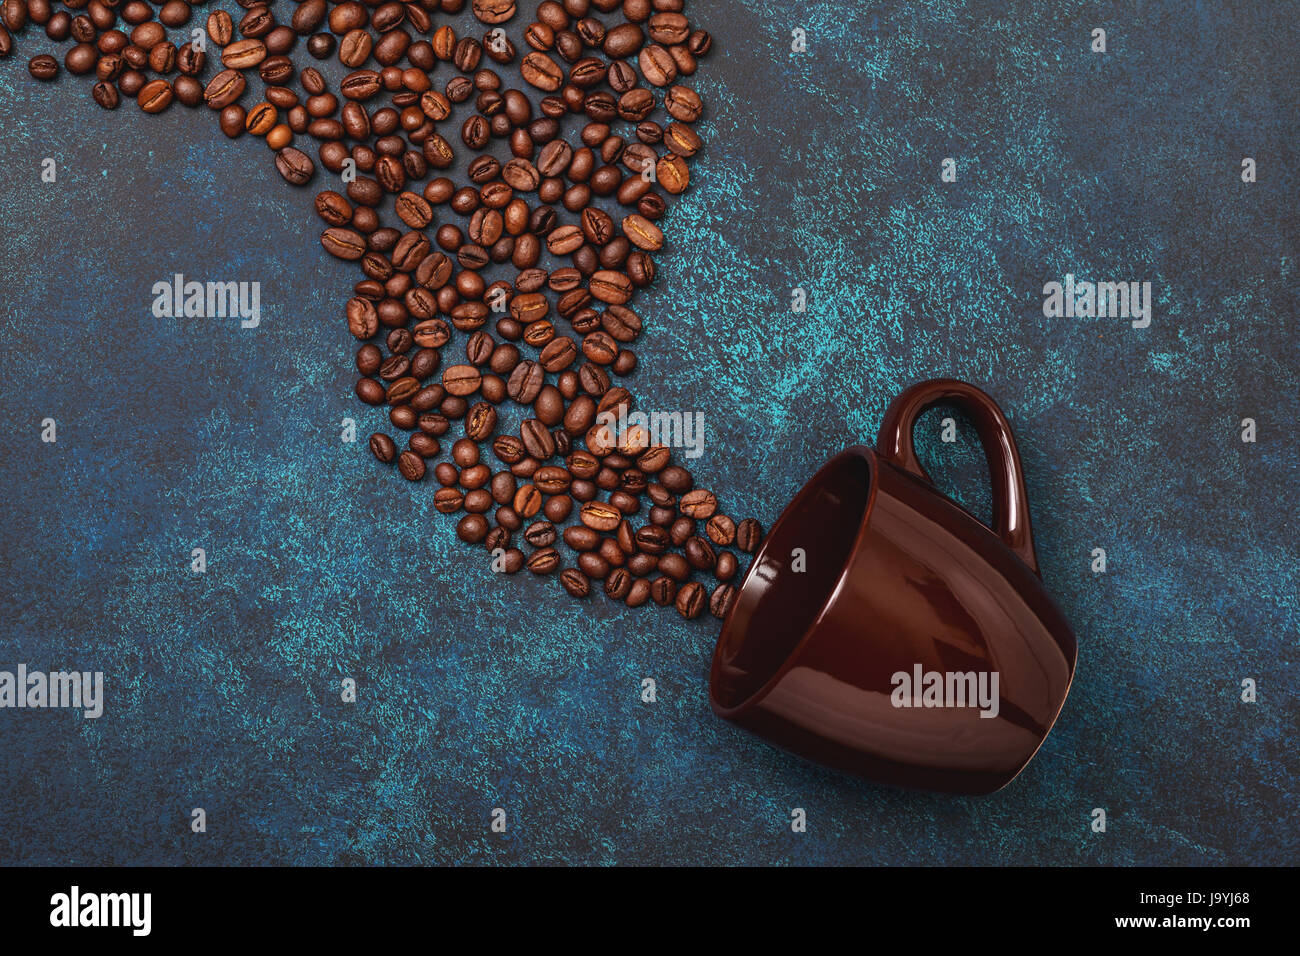 coffee beans and mug on blue concrete background. view from above - Stock Image